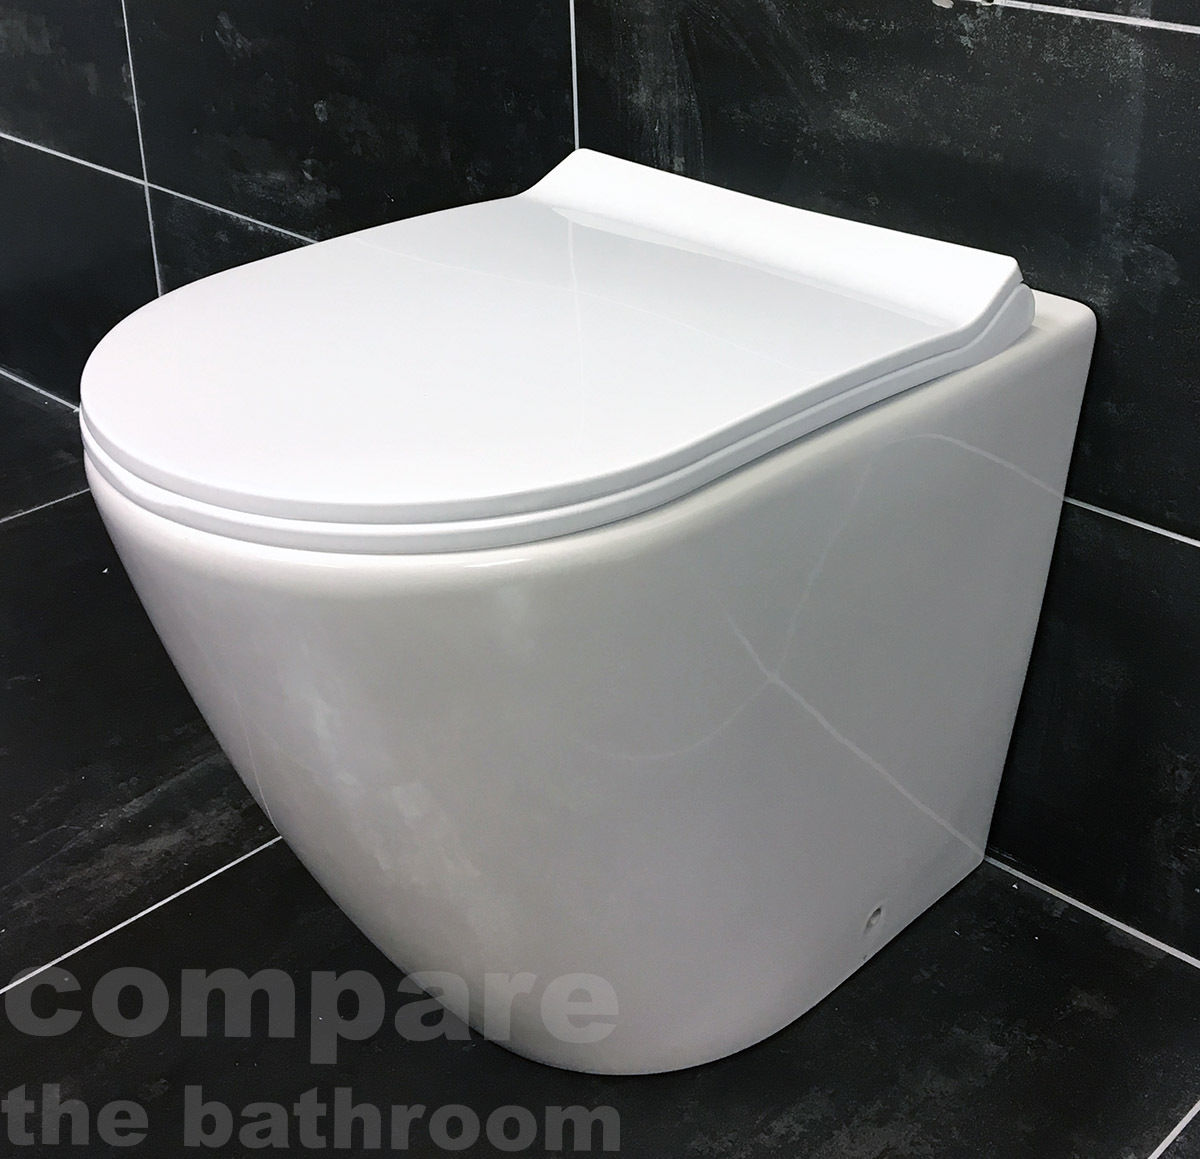 Rue Rimless Back To Wall Toilet Pan Inc Soft Close Seat Short Projection Modern 332321251022 Tewp